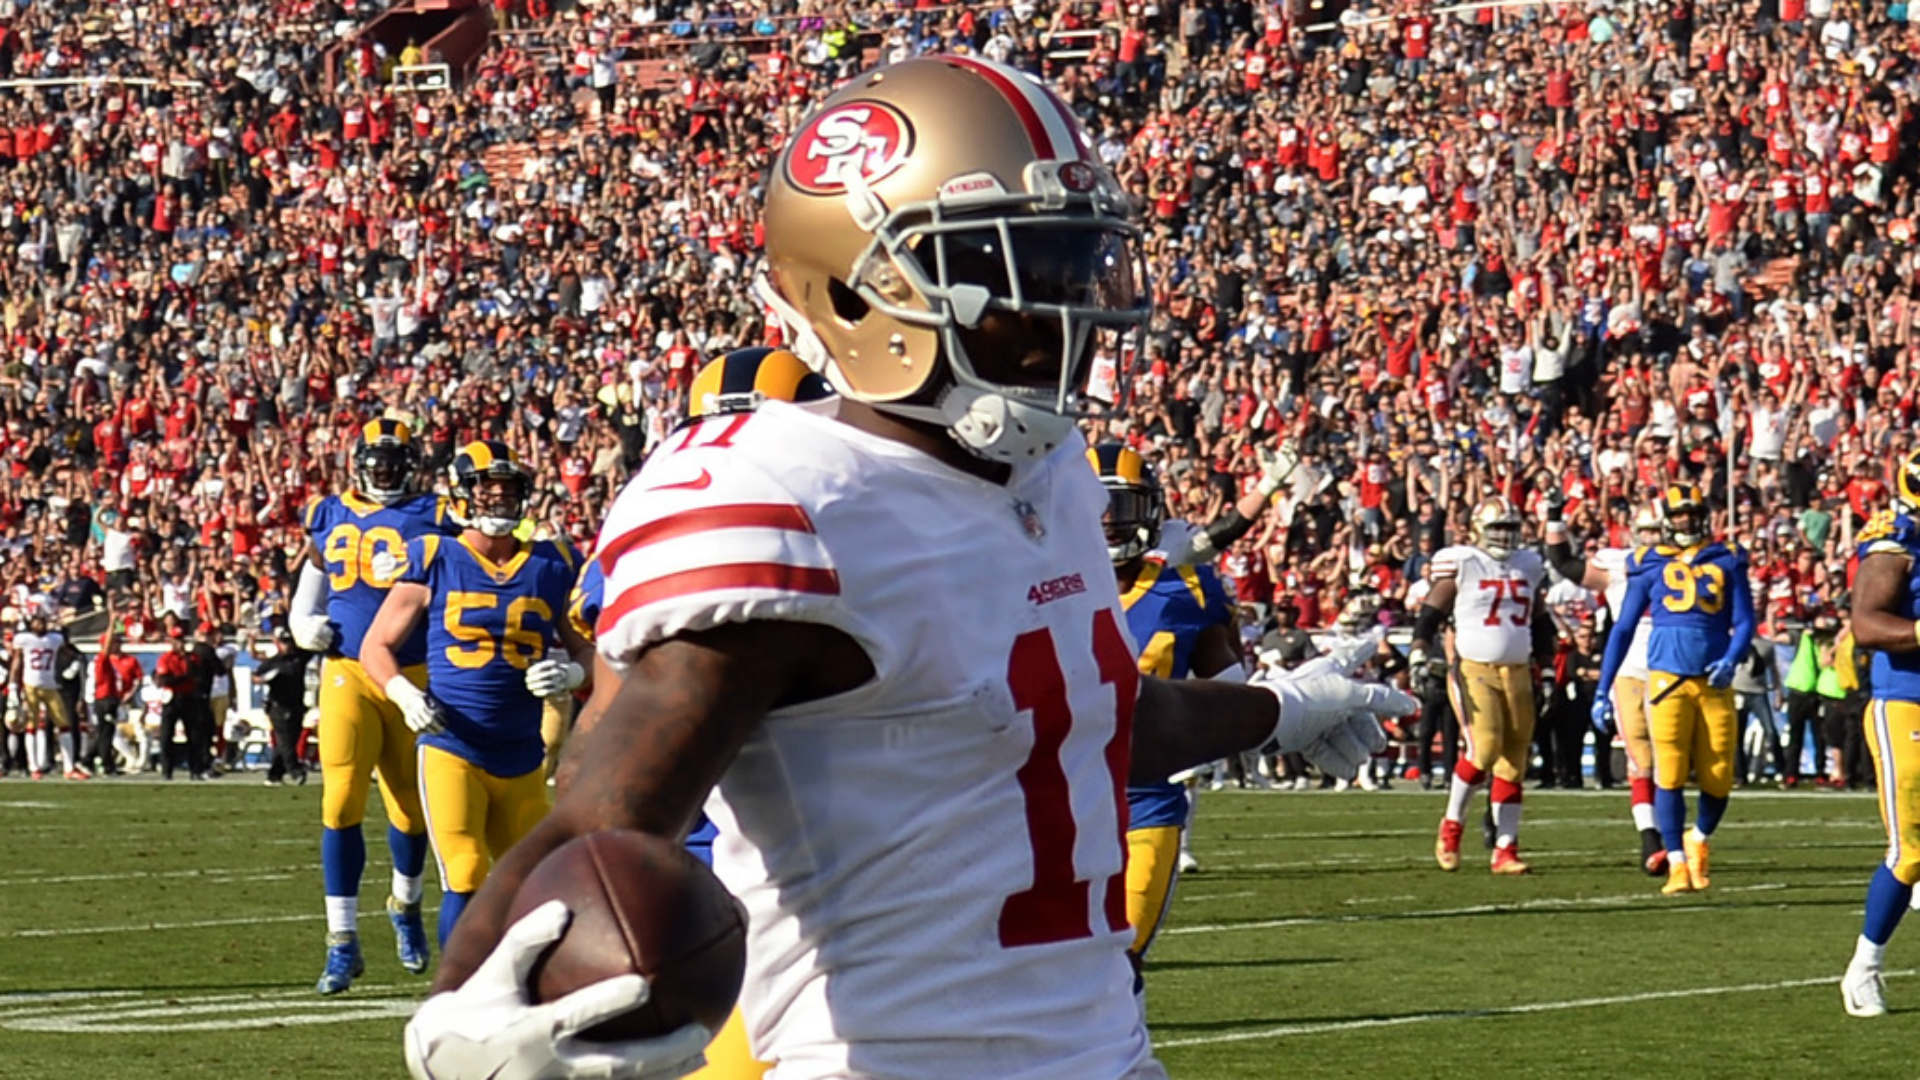 49ers Goodwin taken to hospital after frightening hit